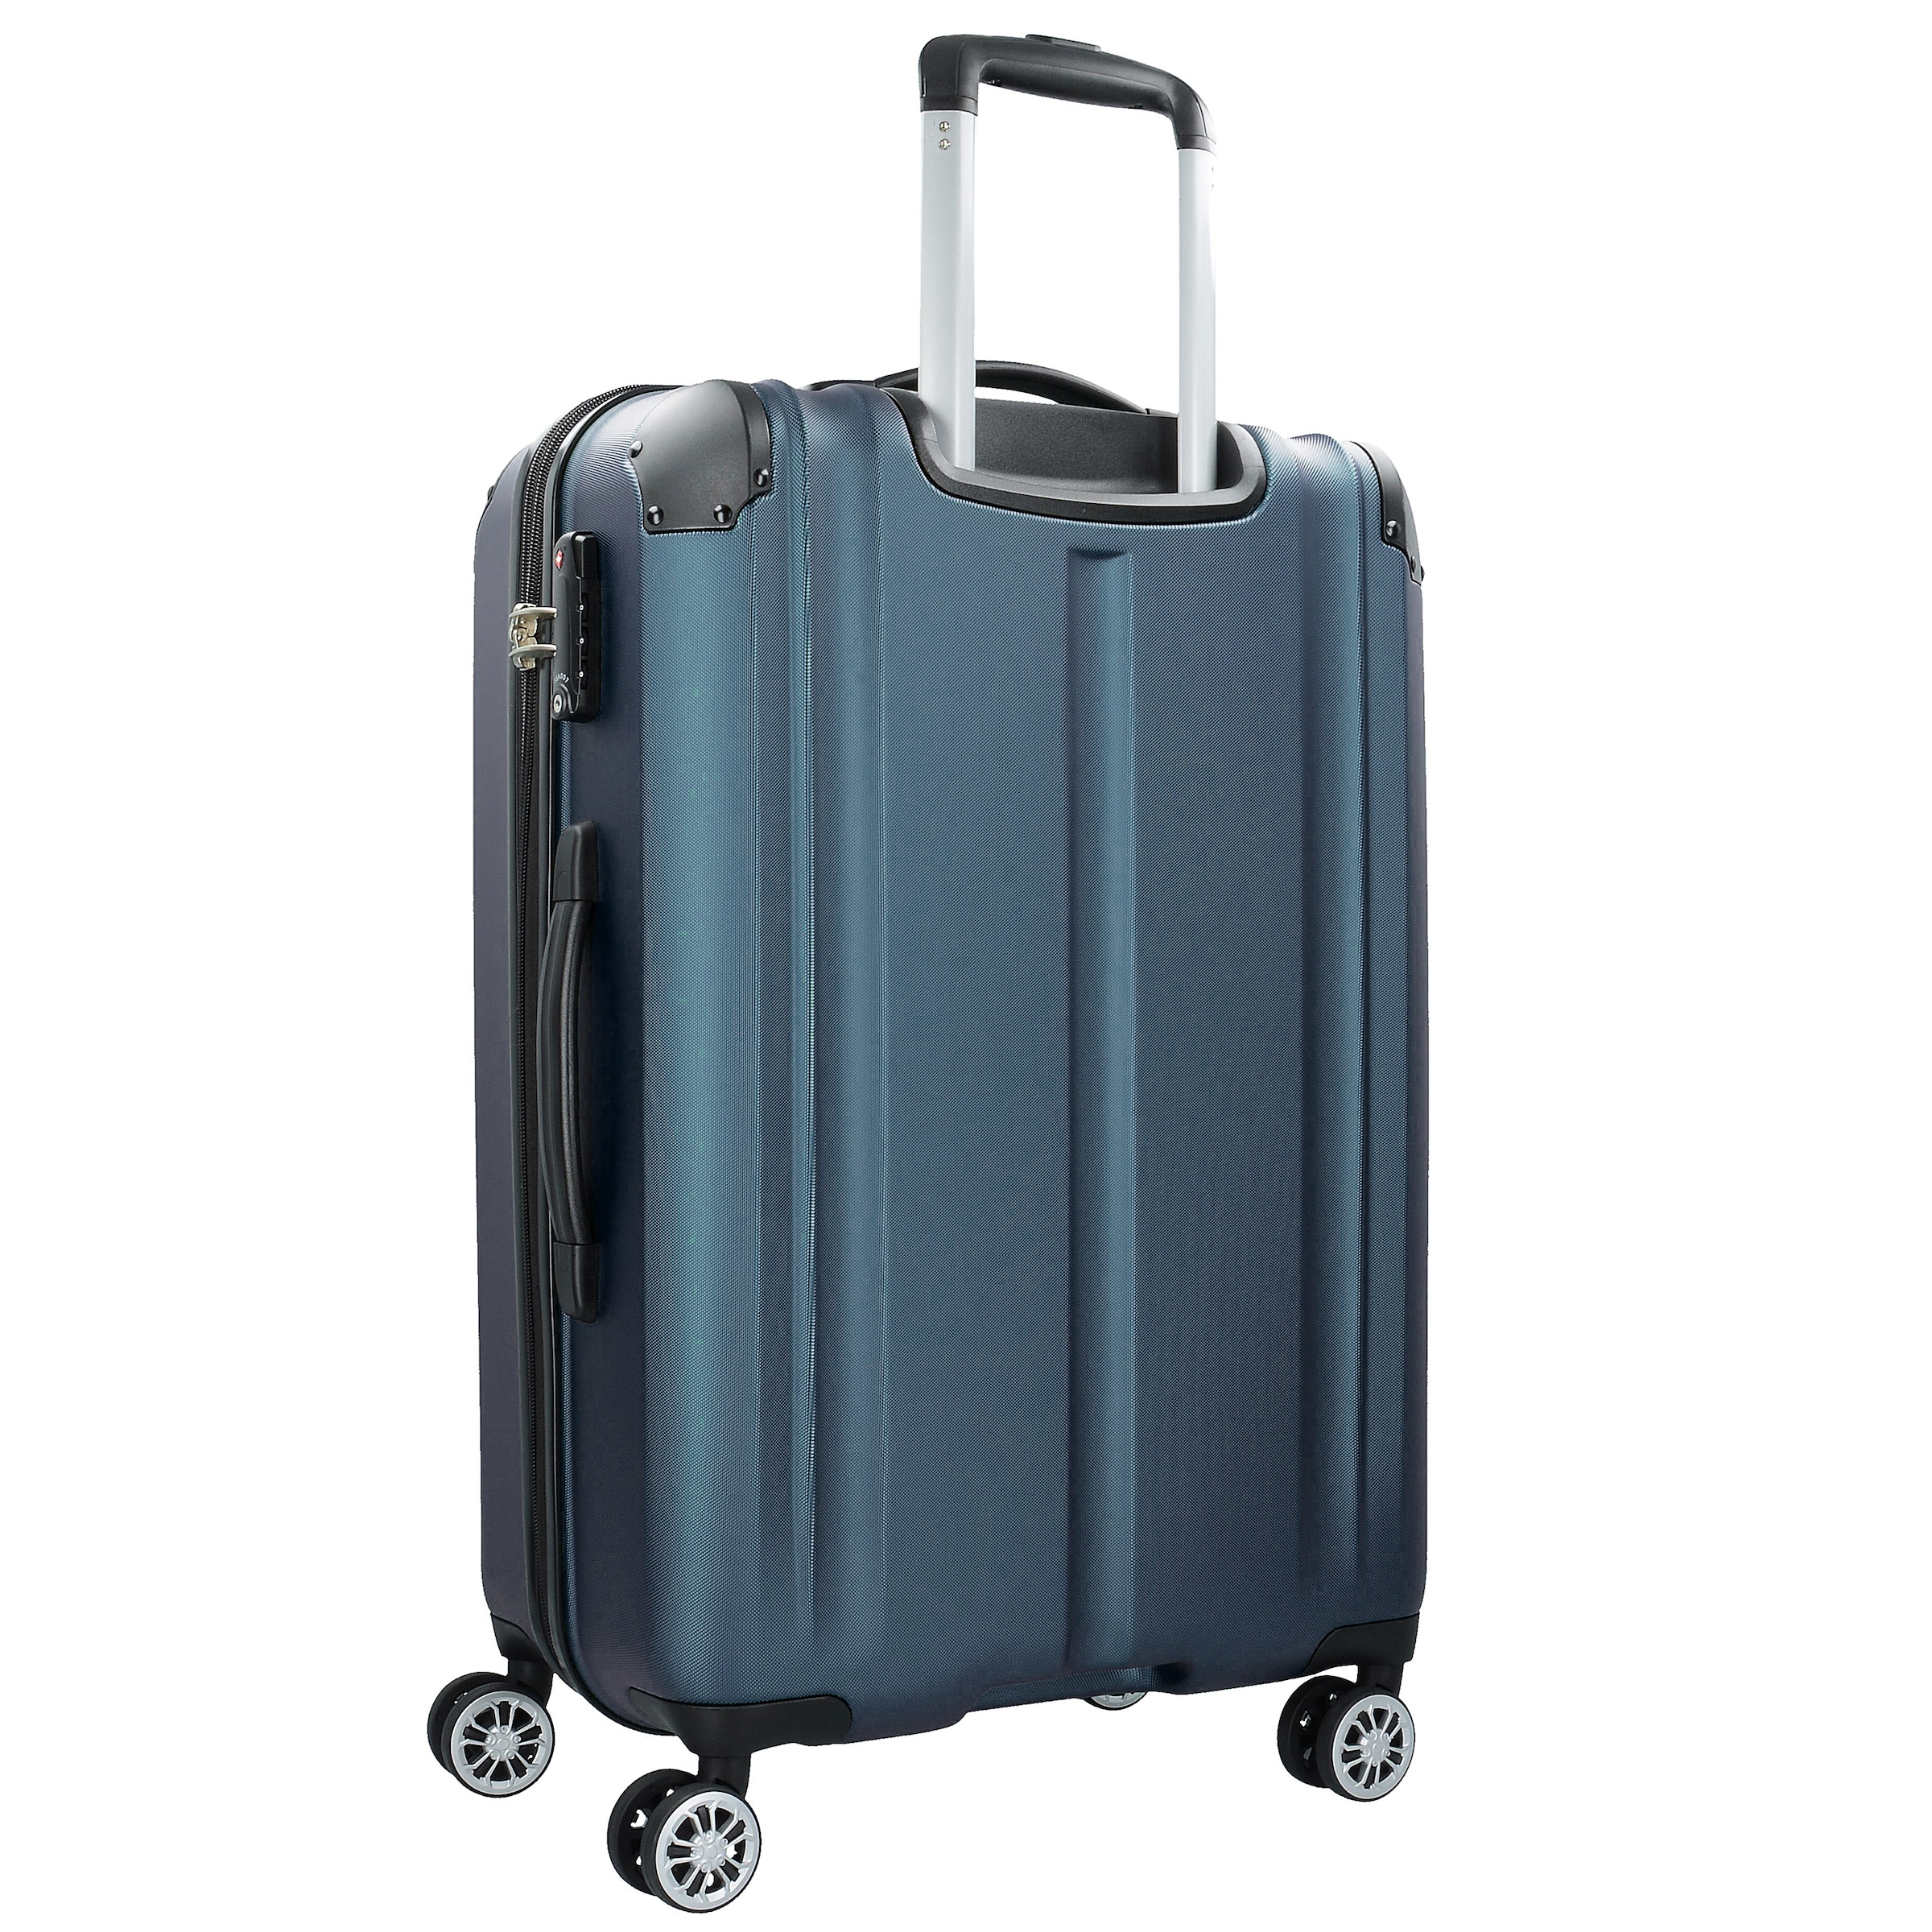 TRAVELITE Trolley in blau